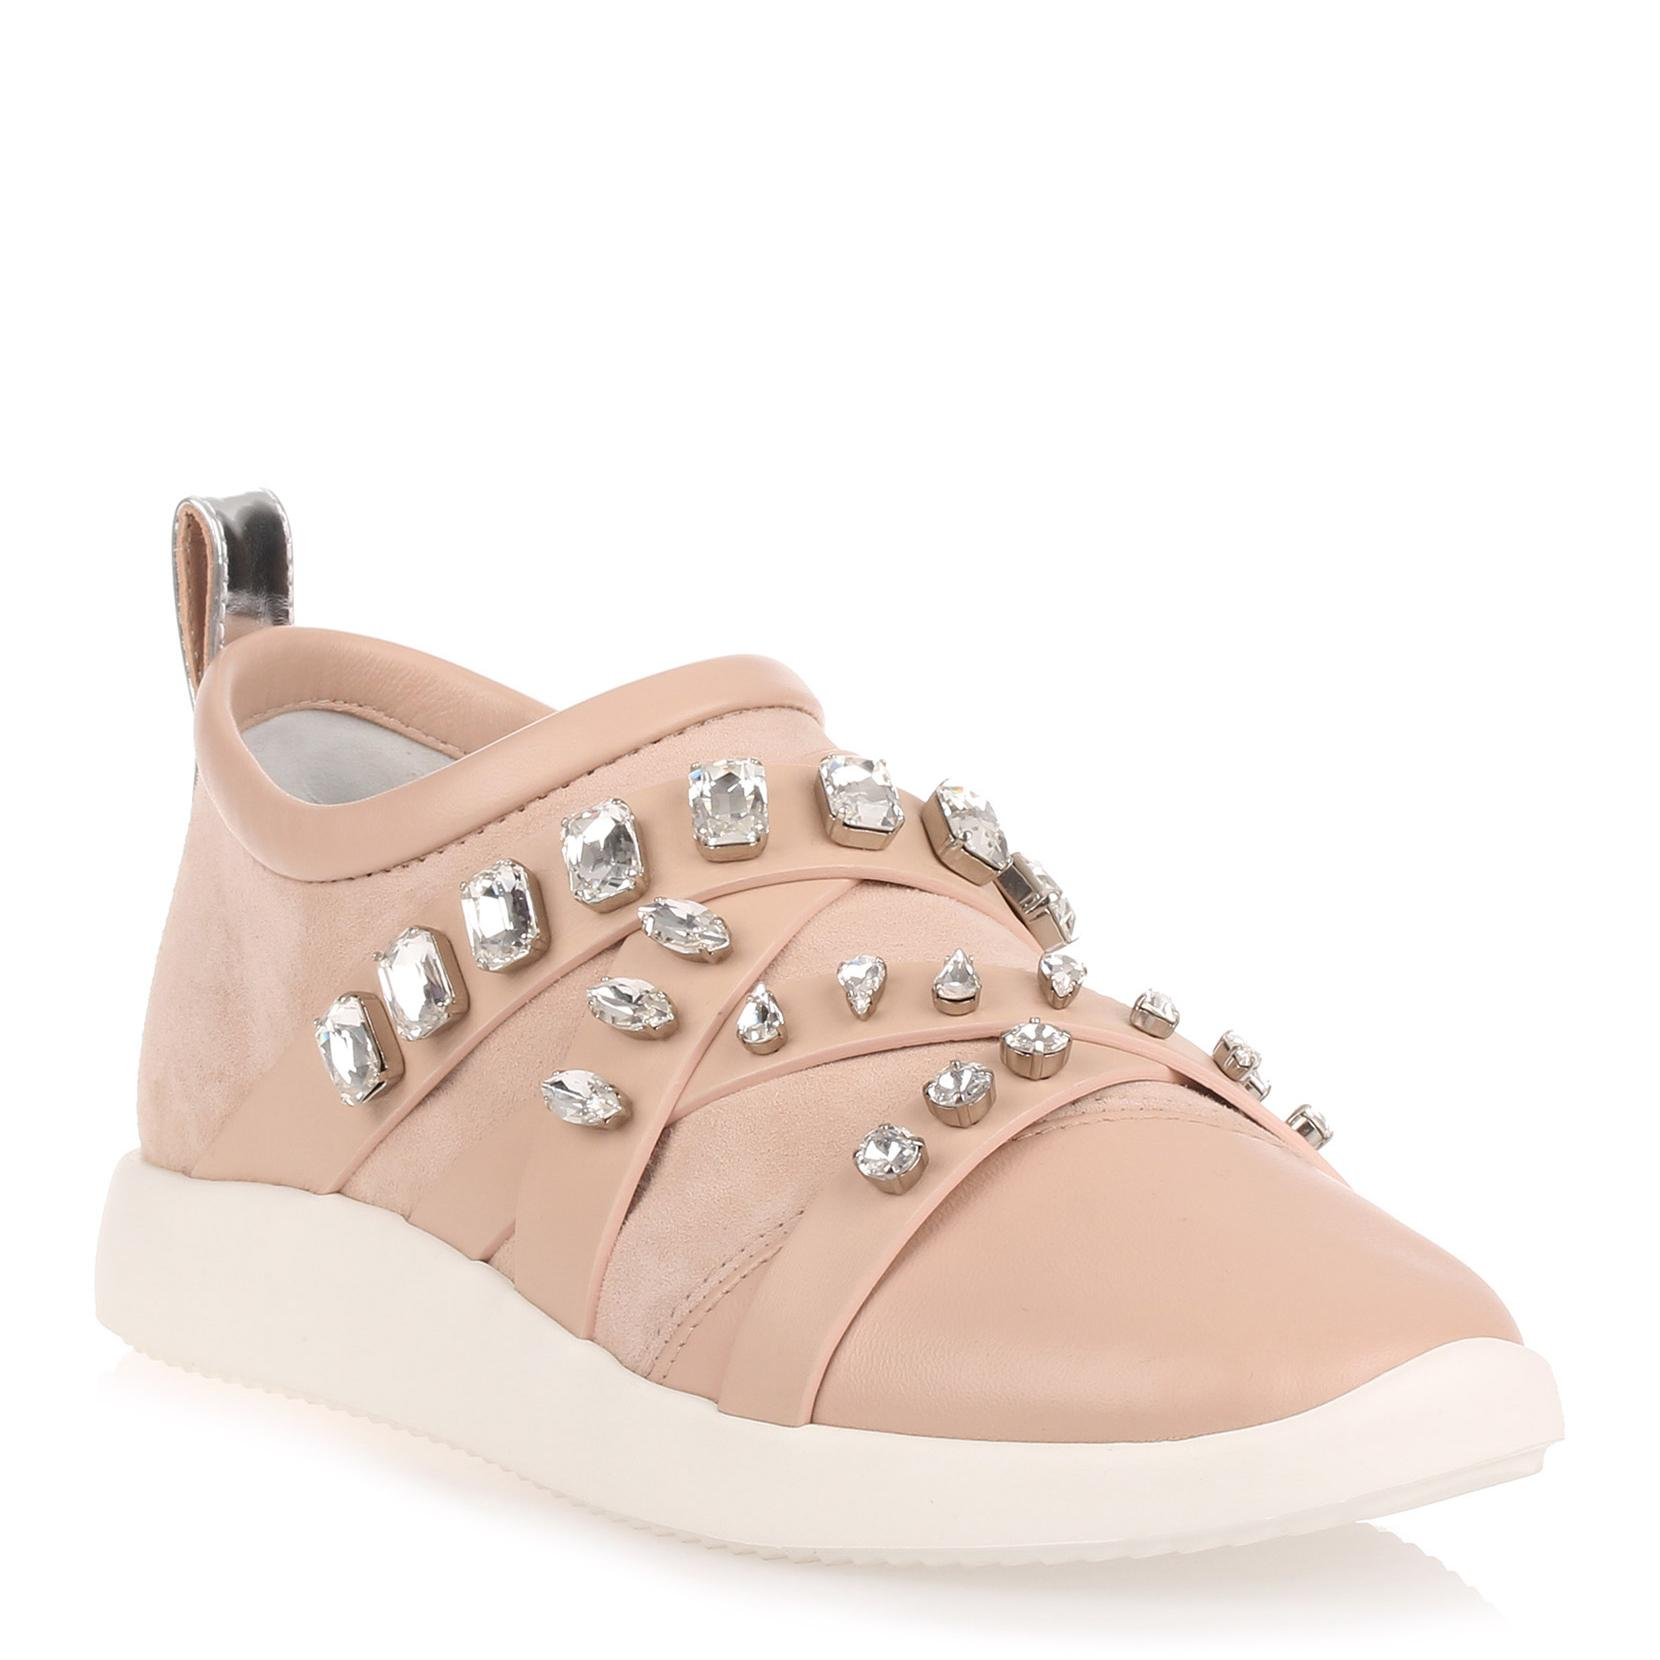 0d362a992c1e Giuseppe Zanotti Blush Suede And Nappa Leather Sneaker In Pink ...